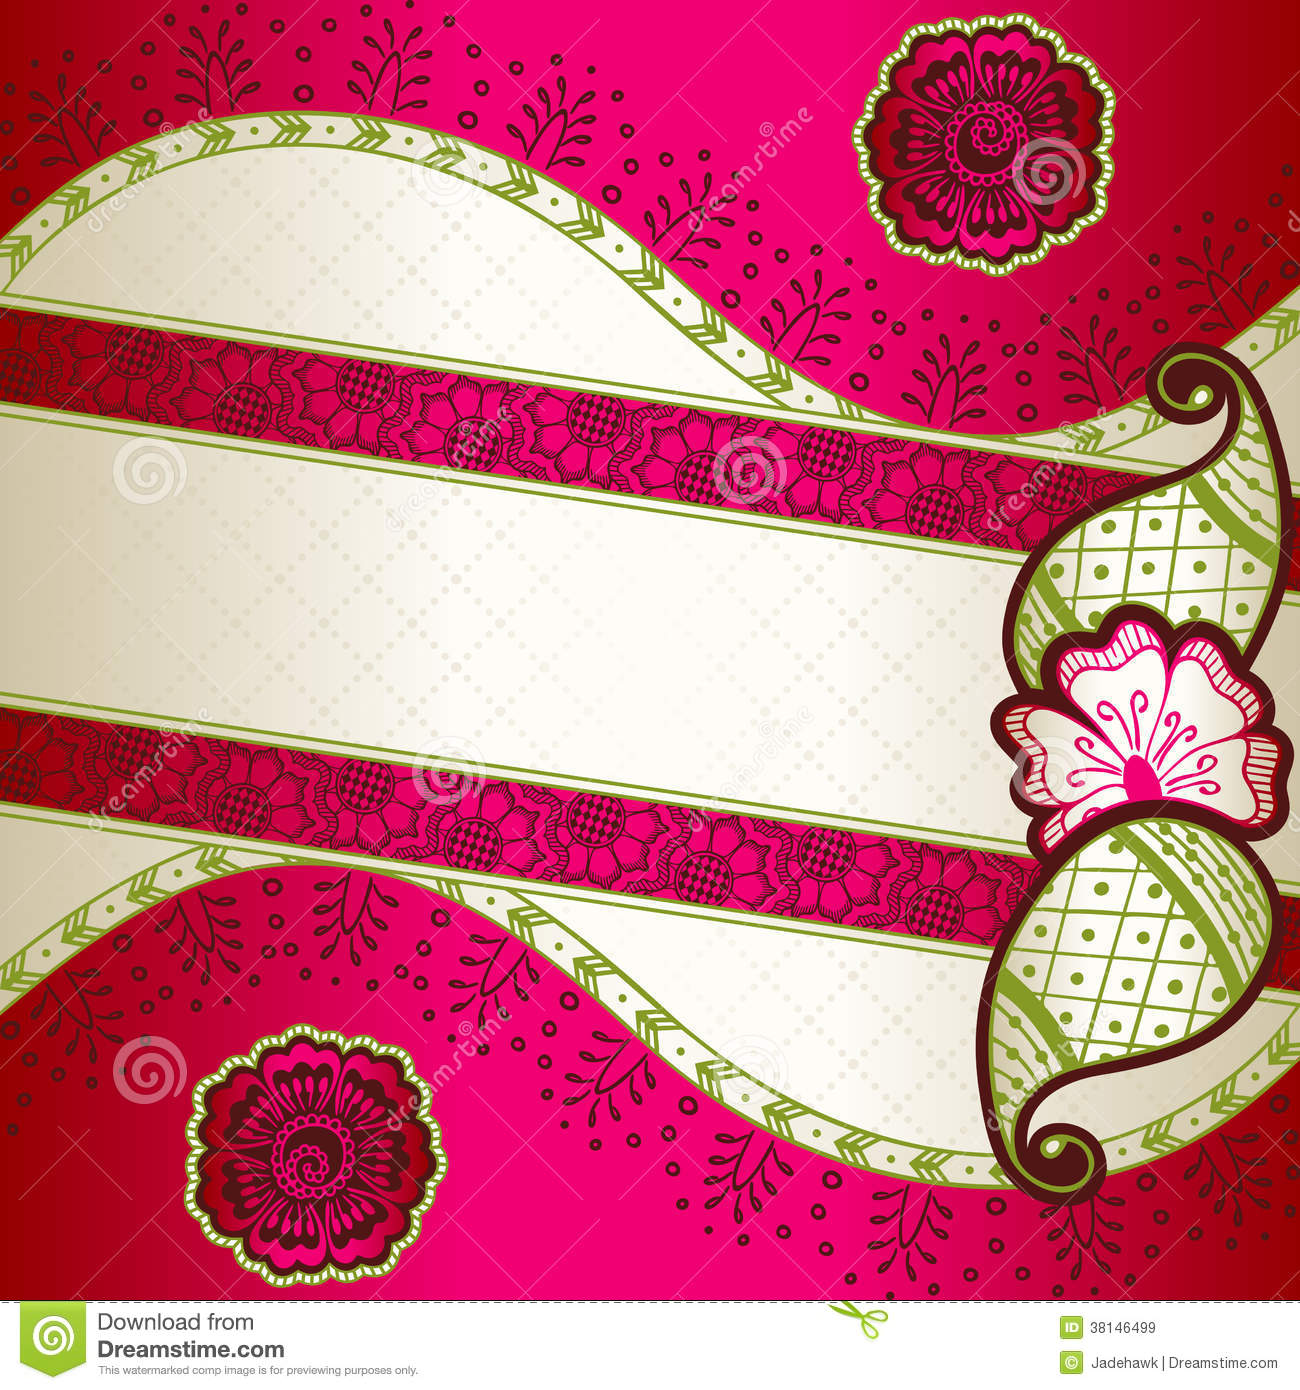 henna inspired banners borders - photo #49